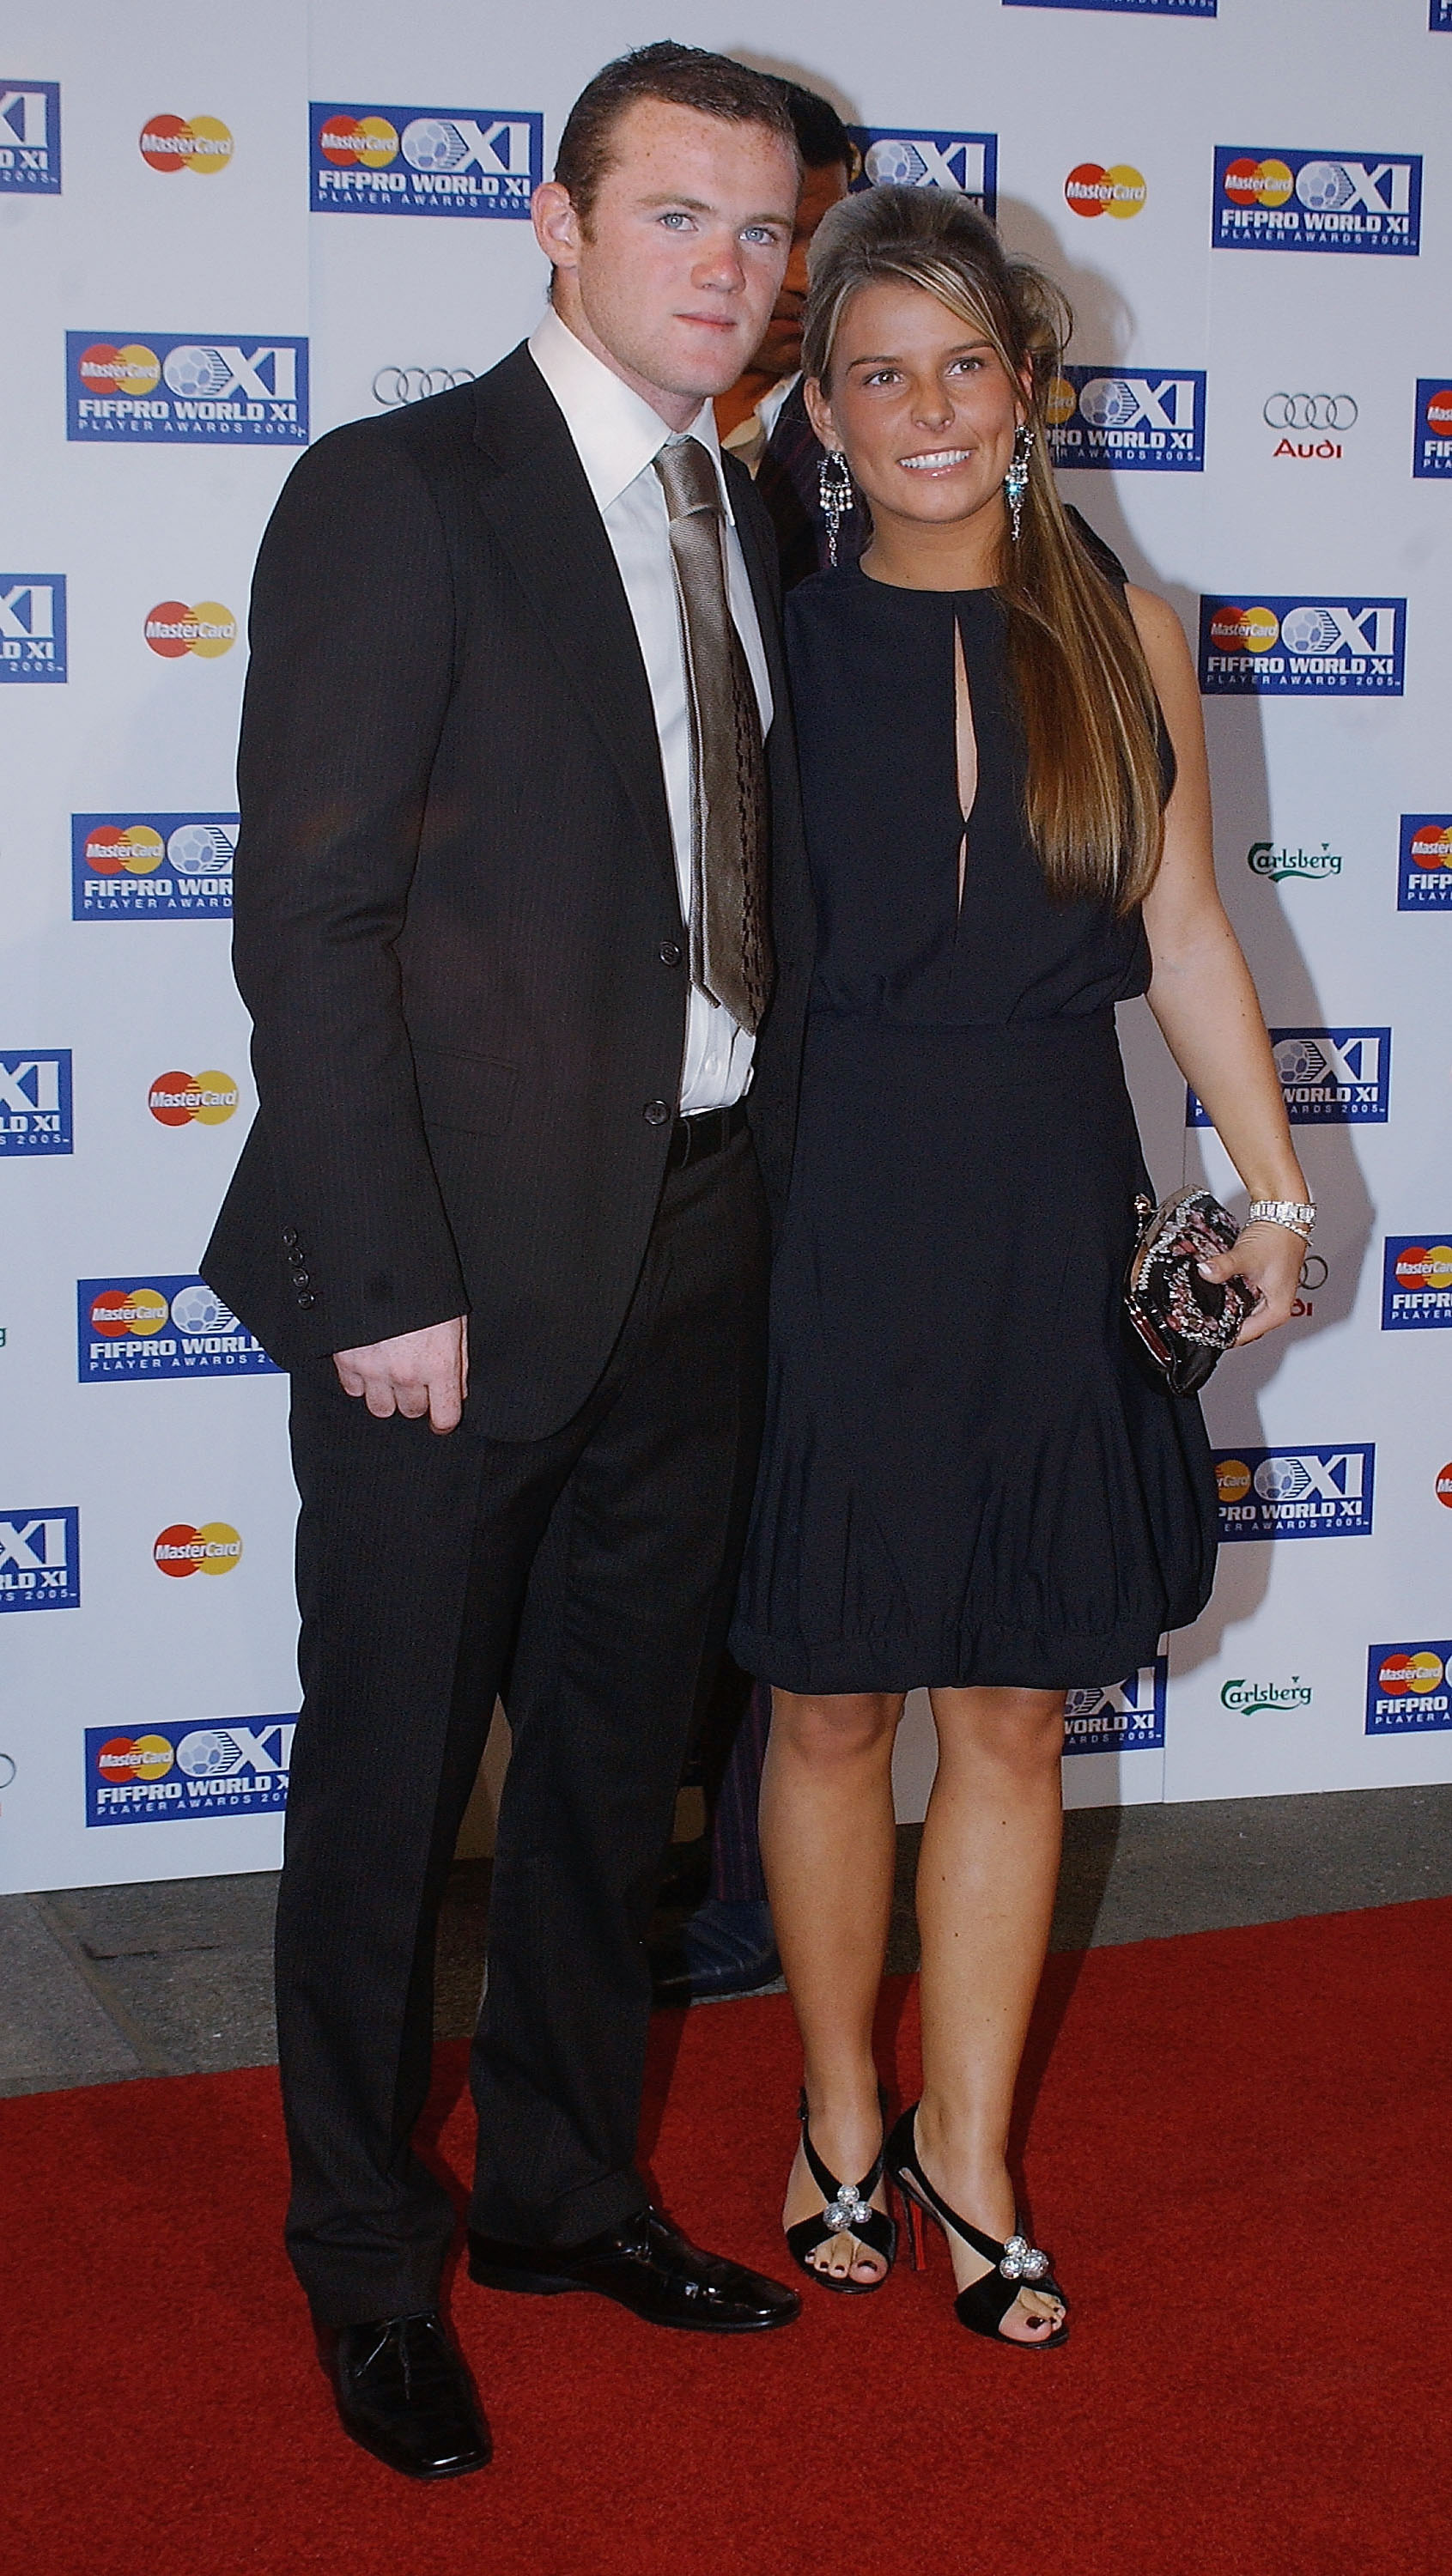 LONDON - SEPTEMBER 19: Wayne Rooney and Girlfriend Coleen Mcloughlin arrive at the Mastercard FIFPRO World XI Player Awards, the inaugural international peer-voted football awards, at BBC Television Centre on September 19, 2005 in London, England. FIFPRO'